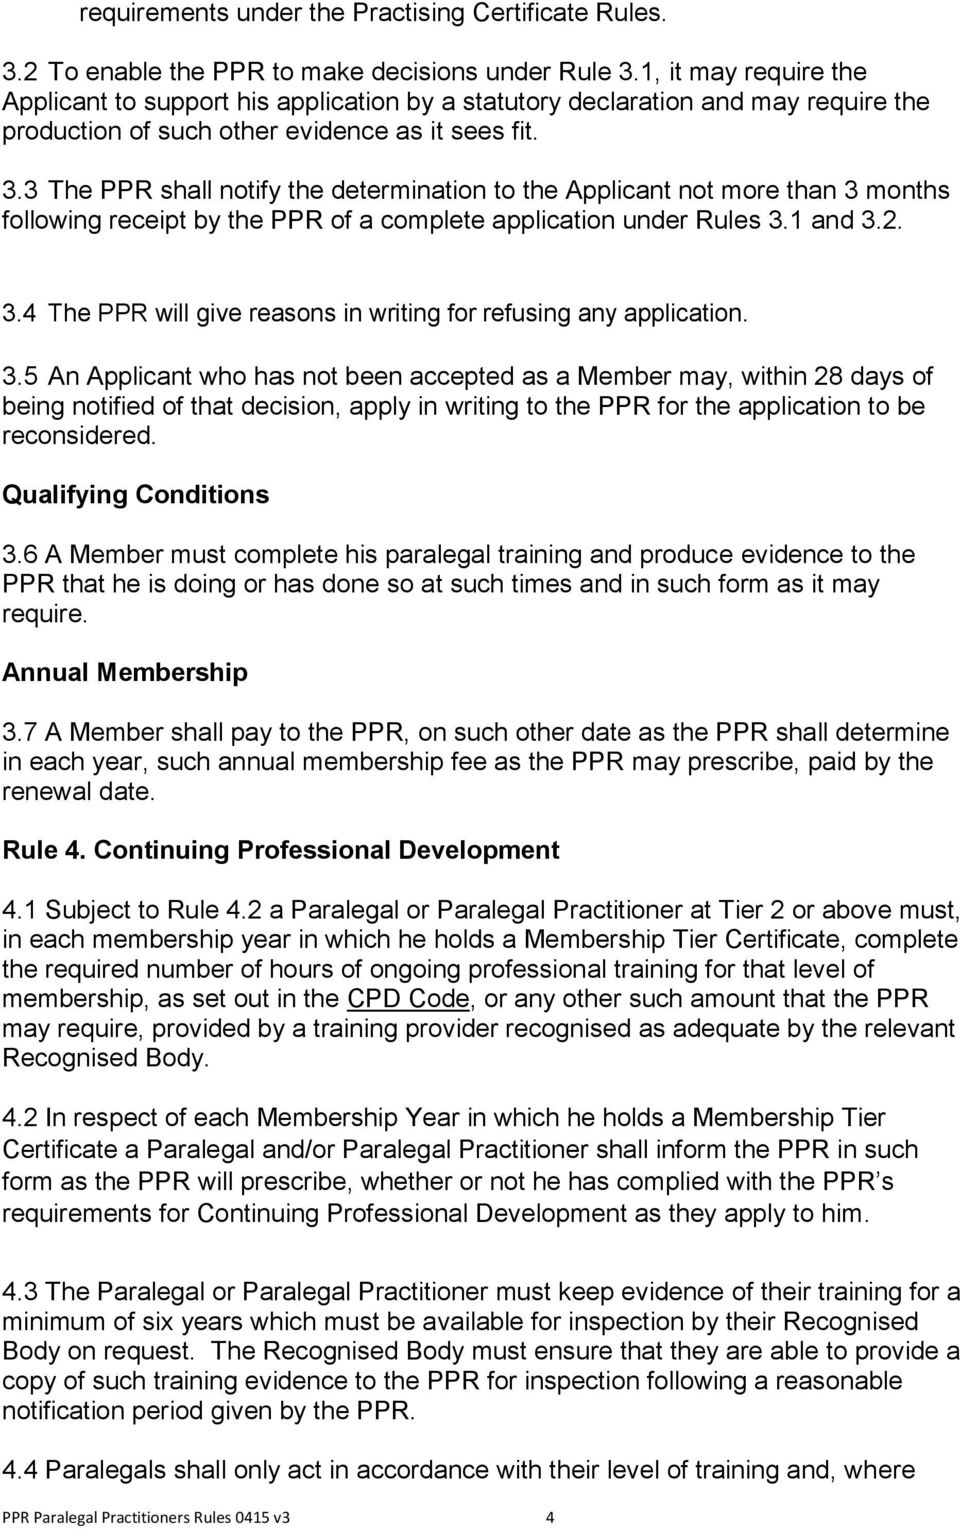 3 The PPR shall notify the determination to the Applicant not more than 3 months following receipt by the PPR of a complete application under Rules 3.1 and 3.2. 3.4 The PPR will give reasons in writing for refusing any application.